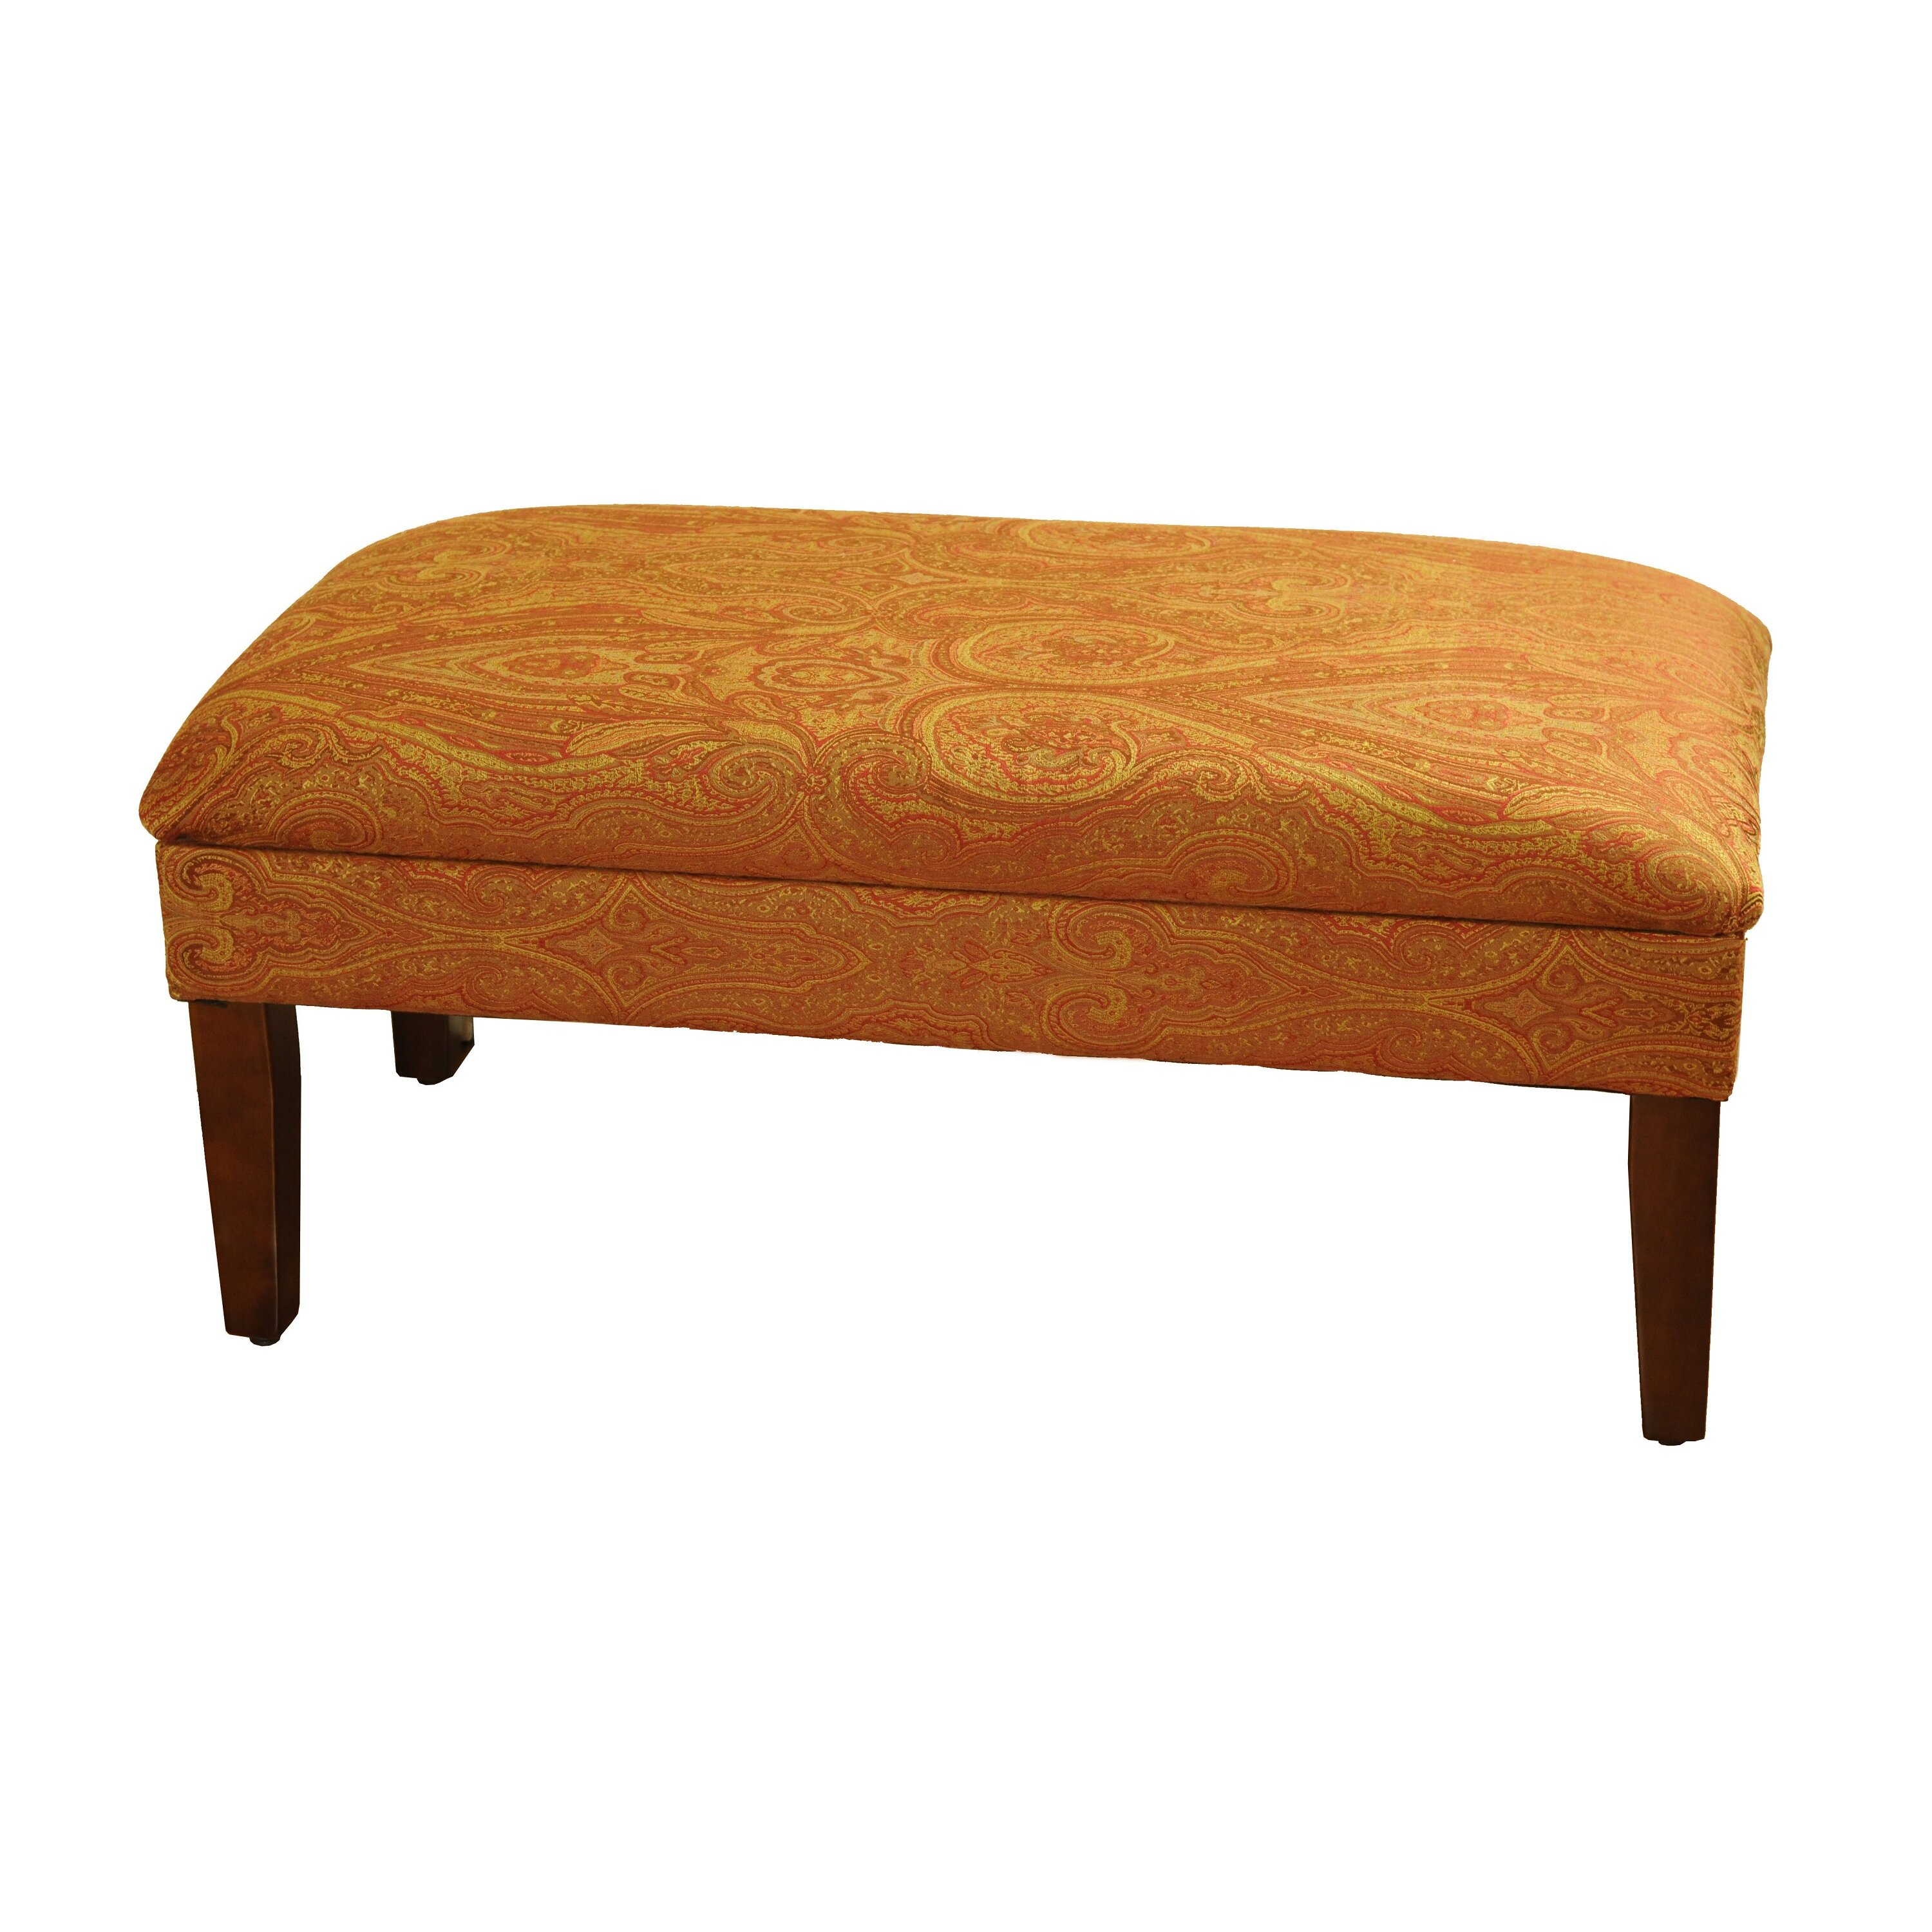 Varian Upholstered Storage Bedroom Bench Reviews: HomePop Upholstered Storage Bedroom Bench & Reviews